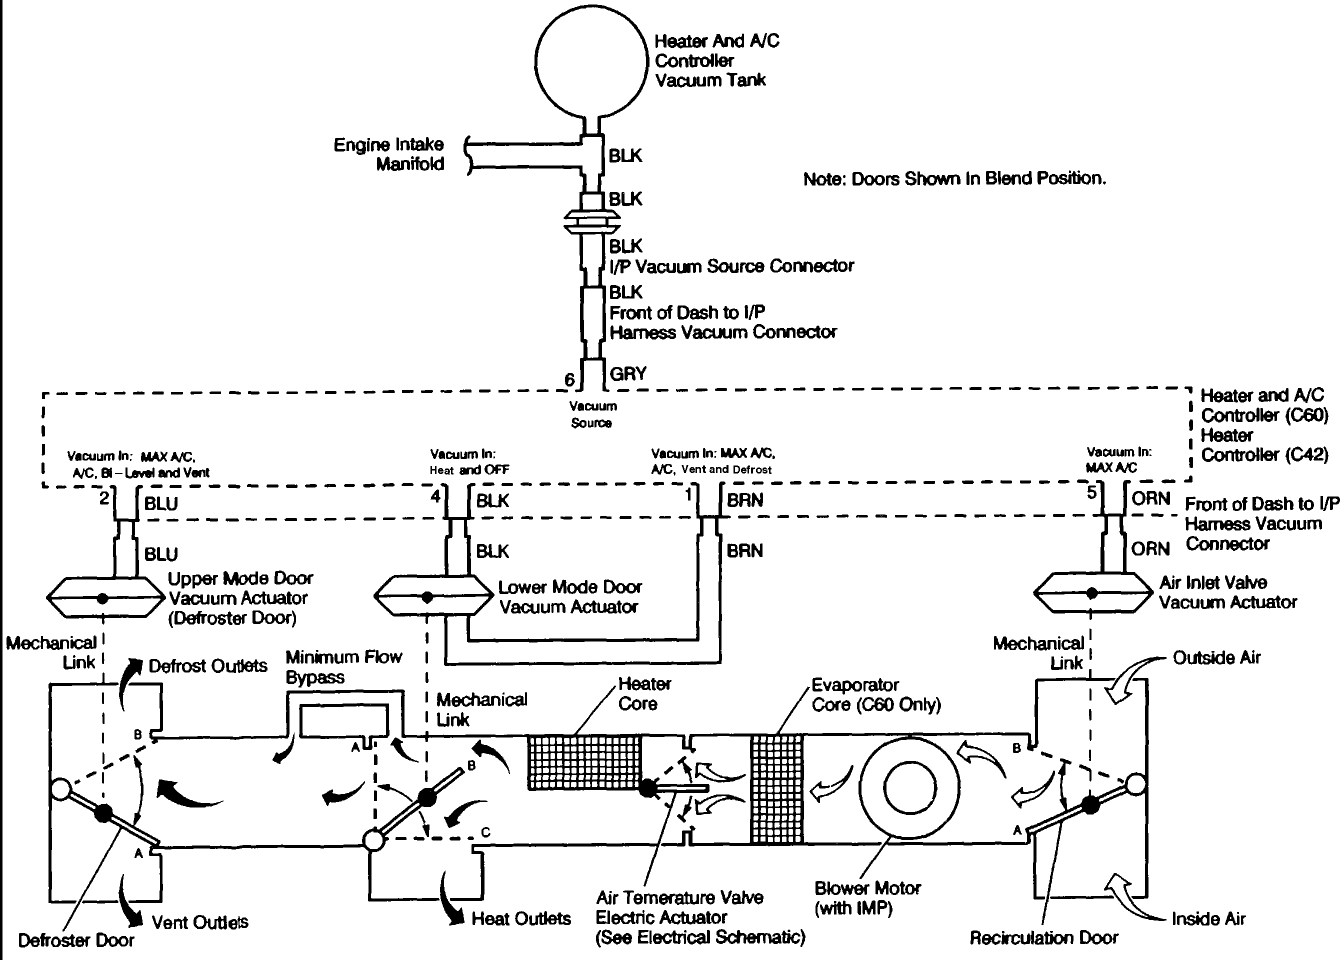 hight resolution of engine vacuum diagram 2003 gmc sonoma wiring diagram hub 2002 jeep grand cherokee vacuum line diagram 2002 gmc sonoma vacuum line diagram car tuning